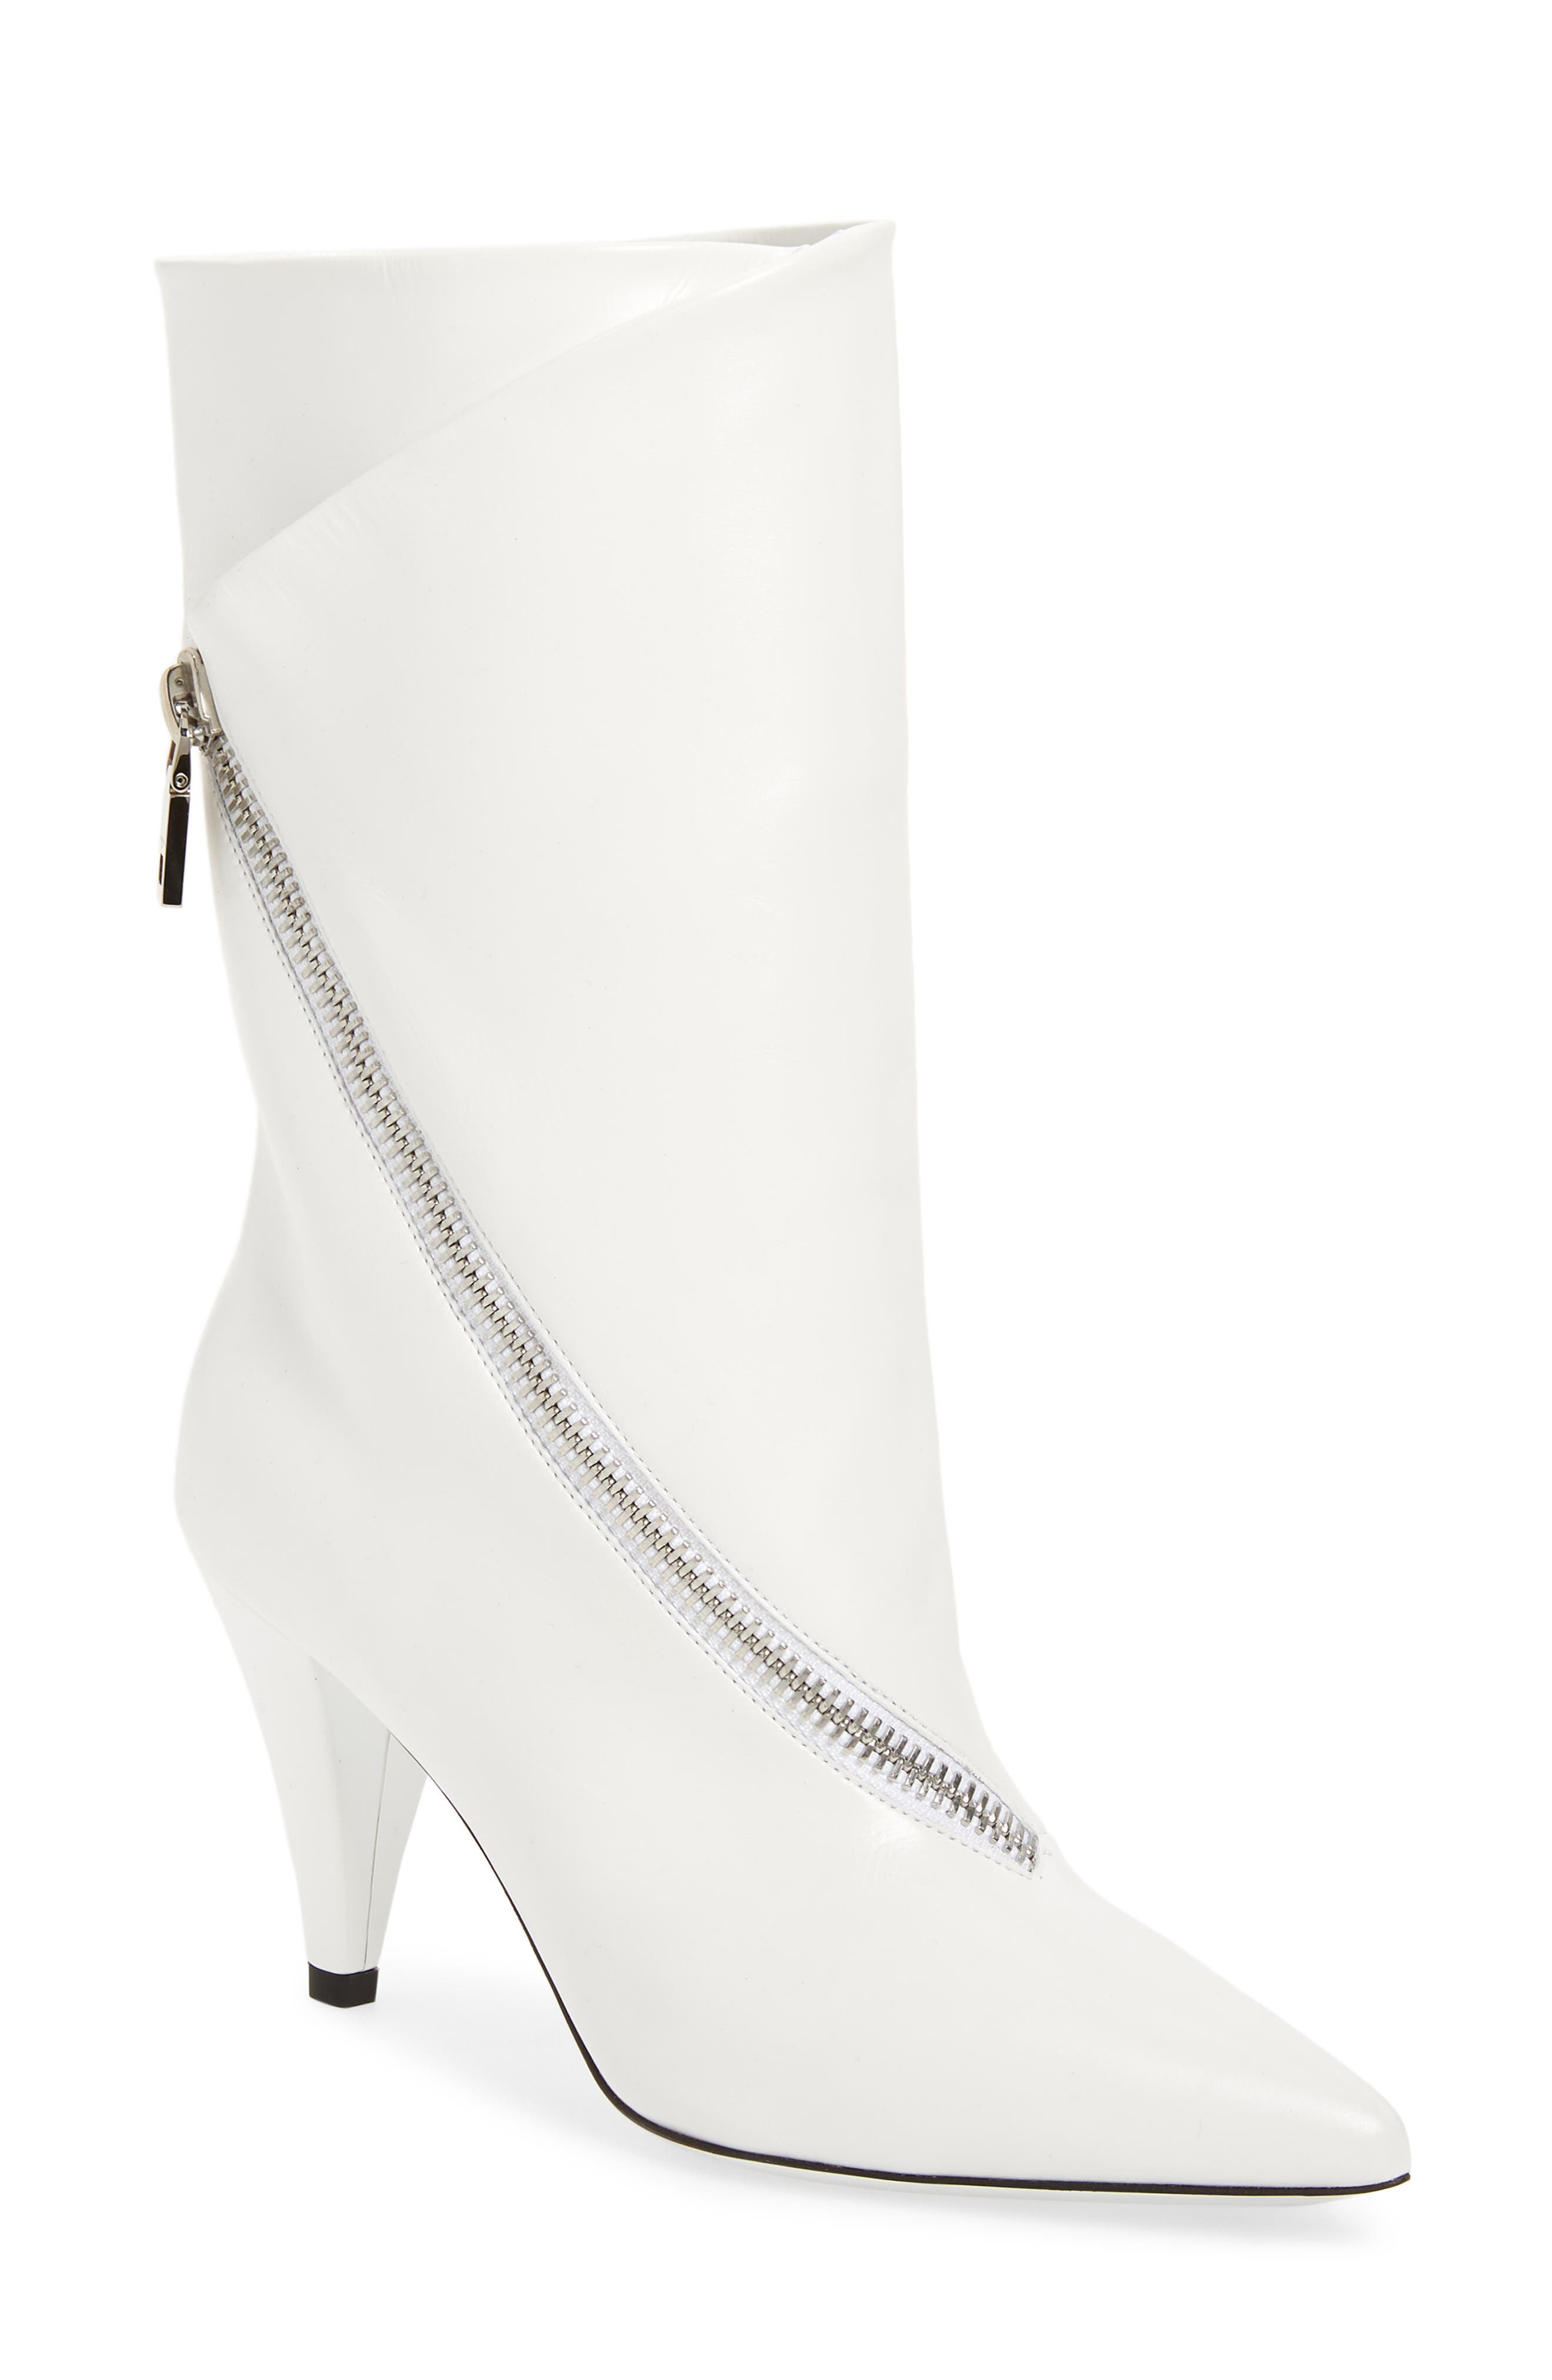 Givenchy Show Bootie - White